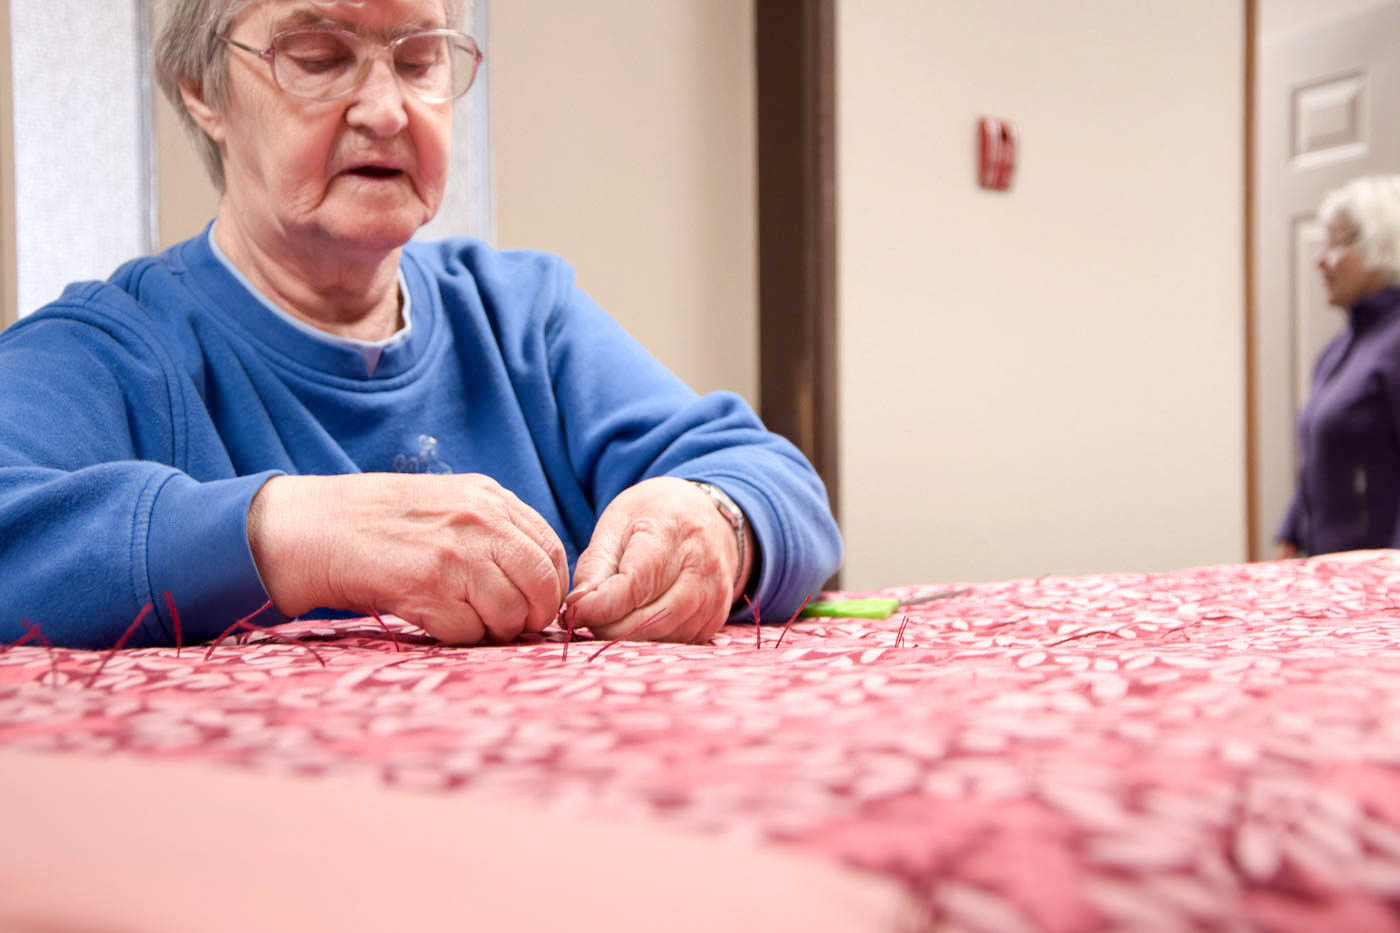 Join us for Quilting at The Gospel Chapel